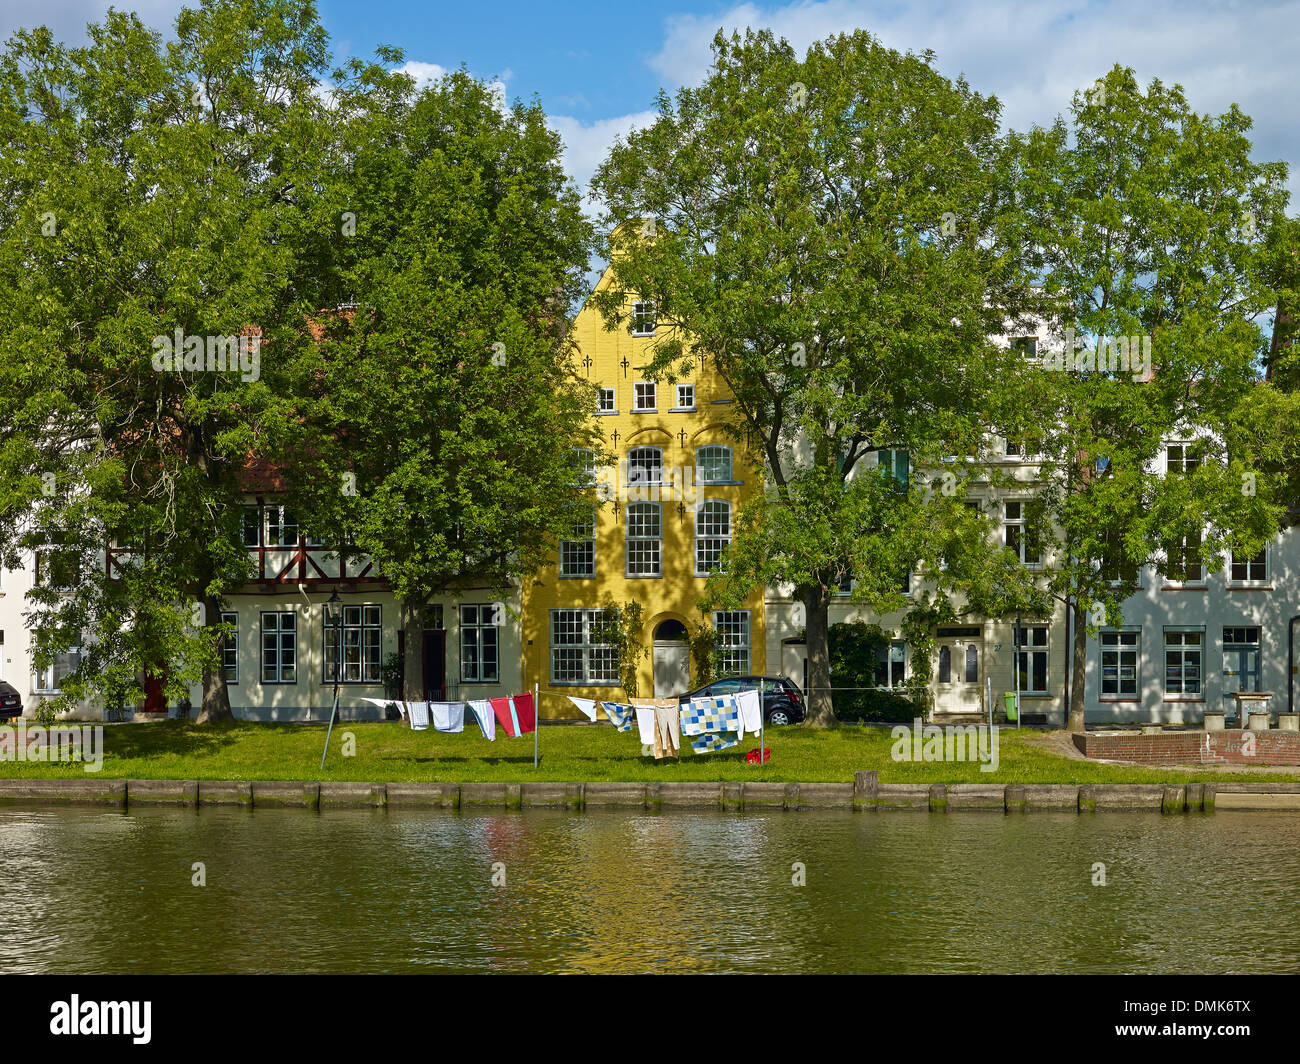 Houses at River Trave, Lübeck, Schleswig-Holstein, Germany - Stock Image